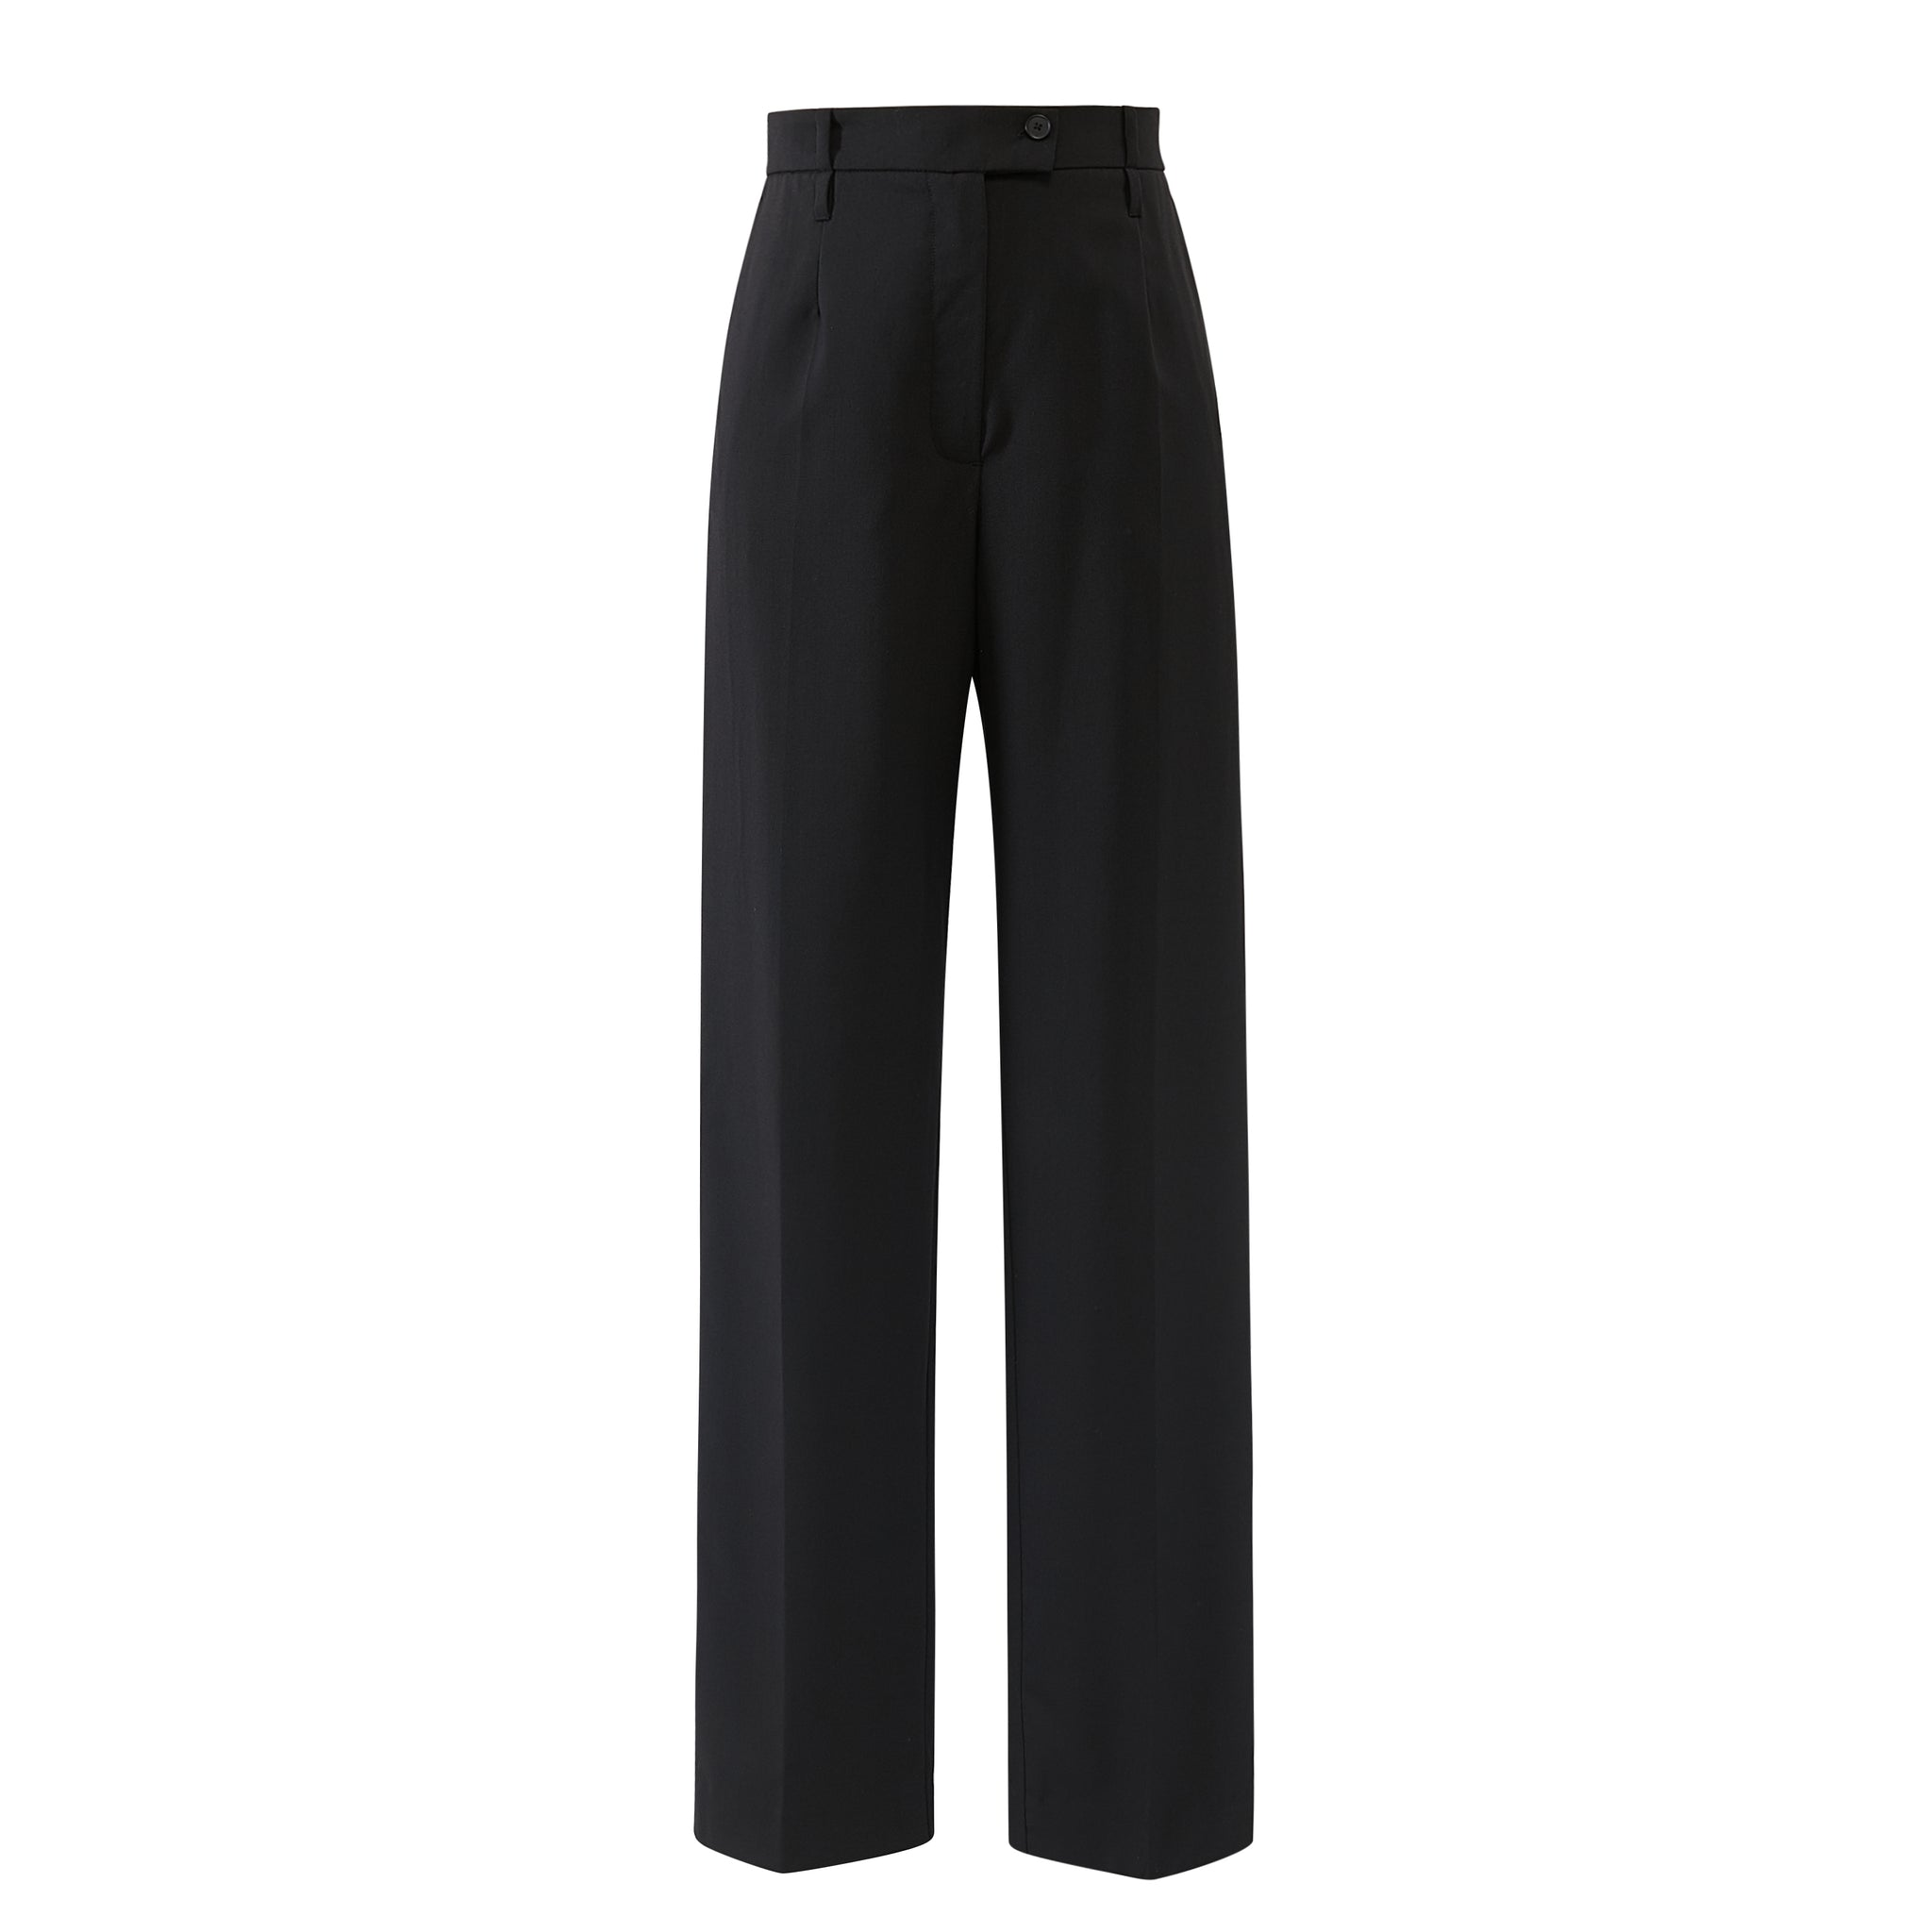 Classic high waisted tailored pants